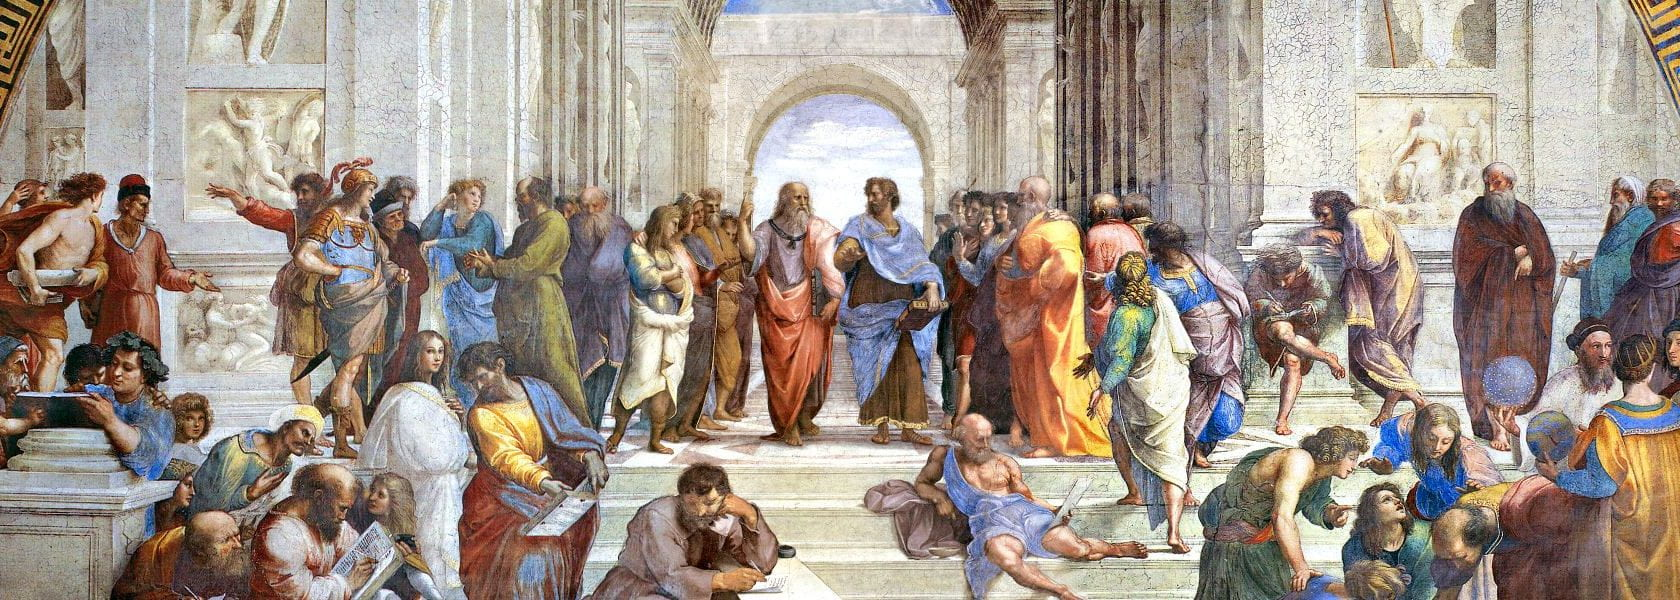 """Painting """"The School of Athens"""" by Raphael (Apostolic Palace, Vatican)"""